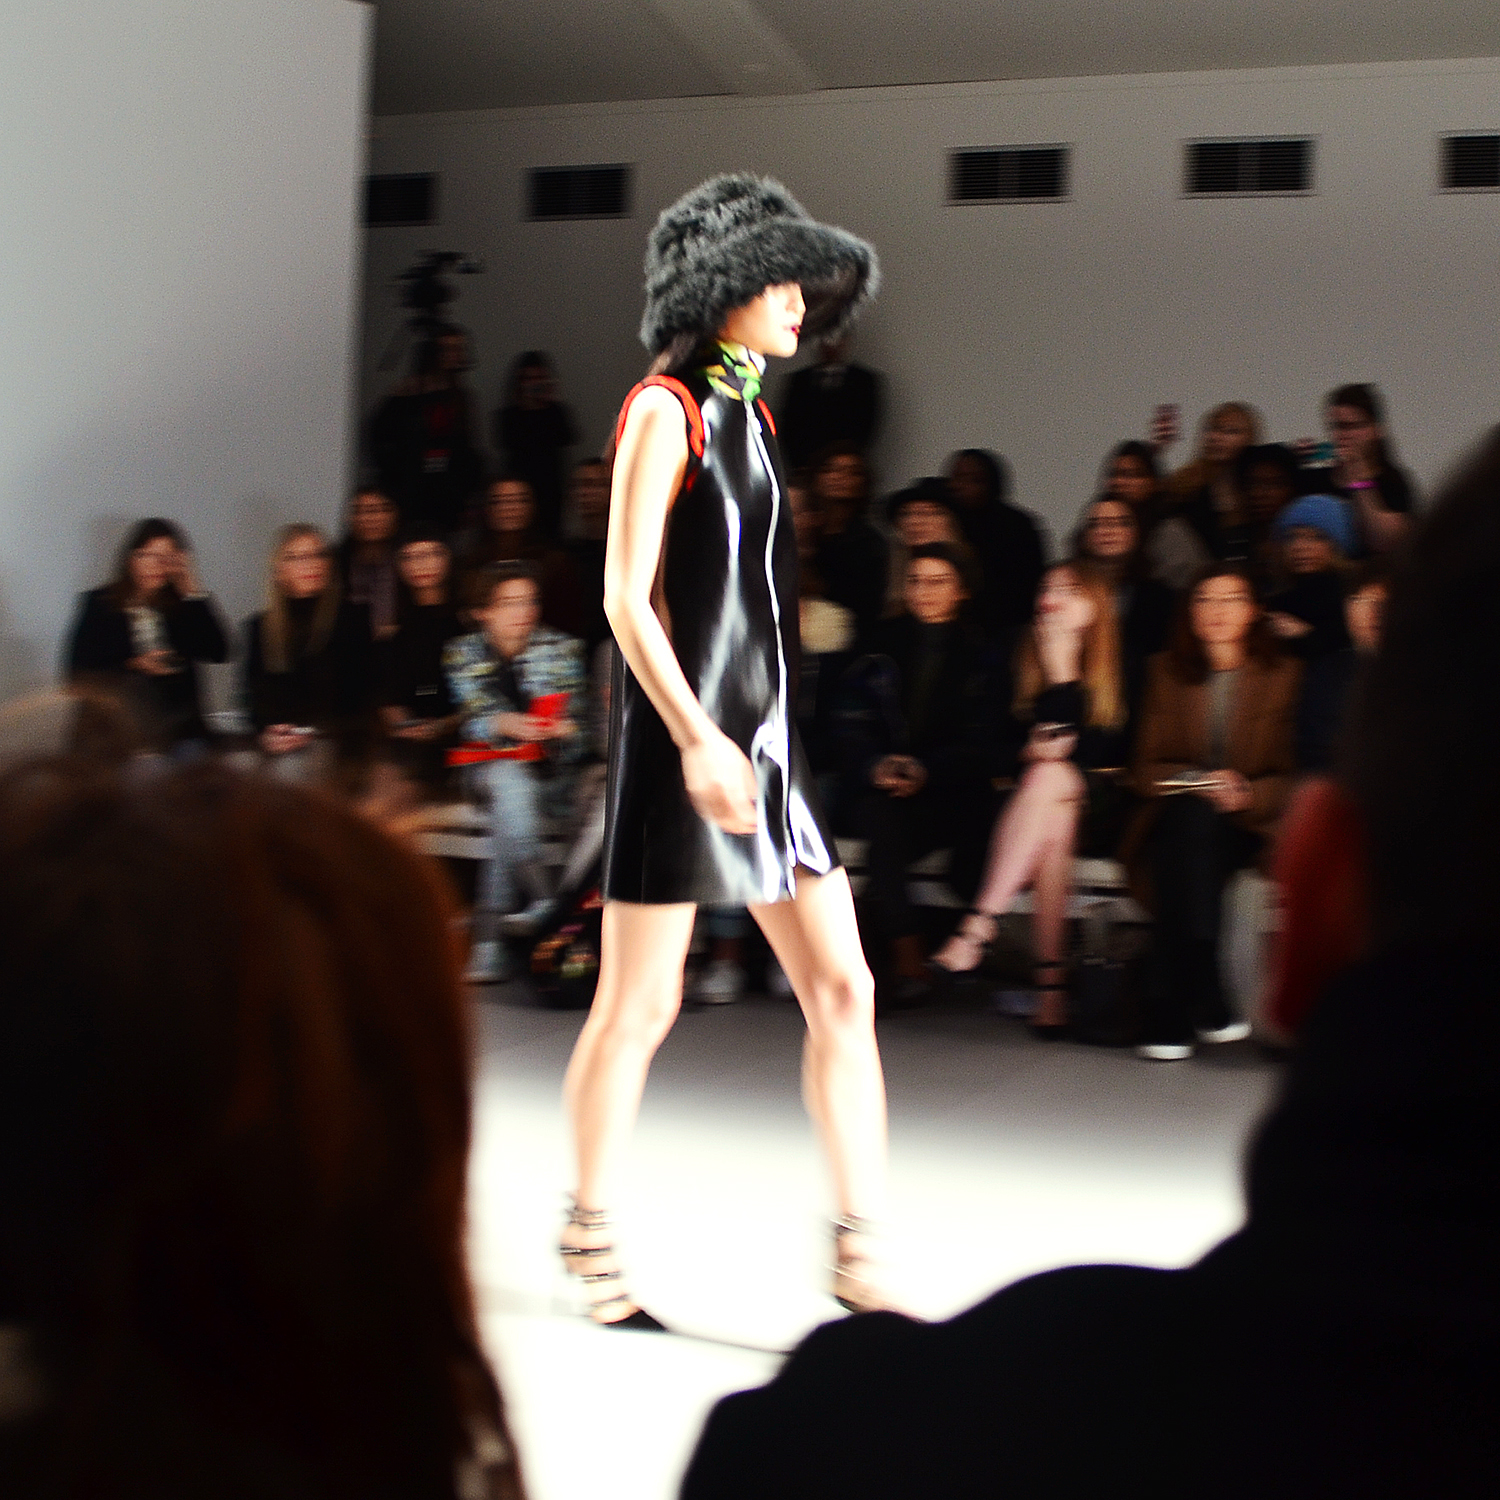 LFW AW15: DAY FIVE: ASHLEY WILLIAMS, H BY HAKAAN, LONDON FASHION WEEK A/W15 STEPHI LAREINE